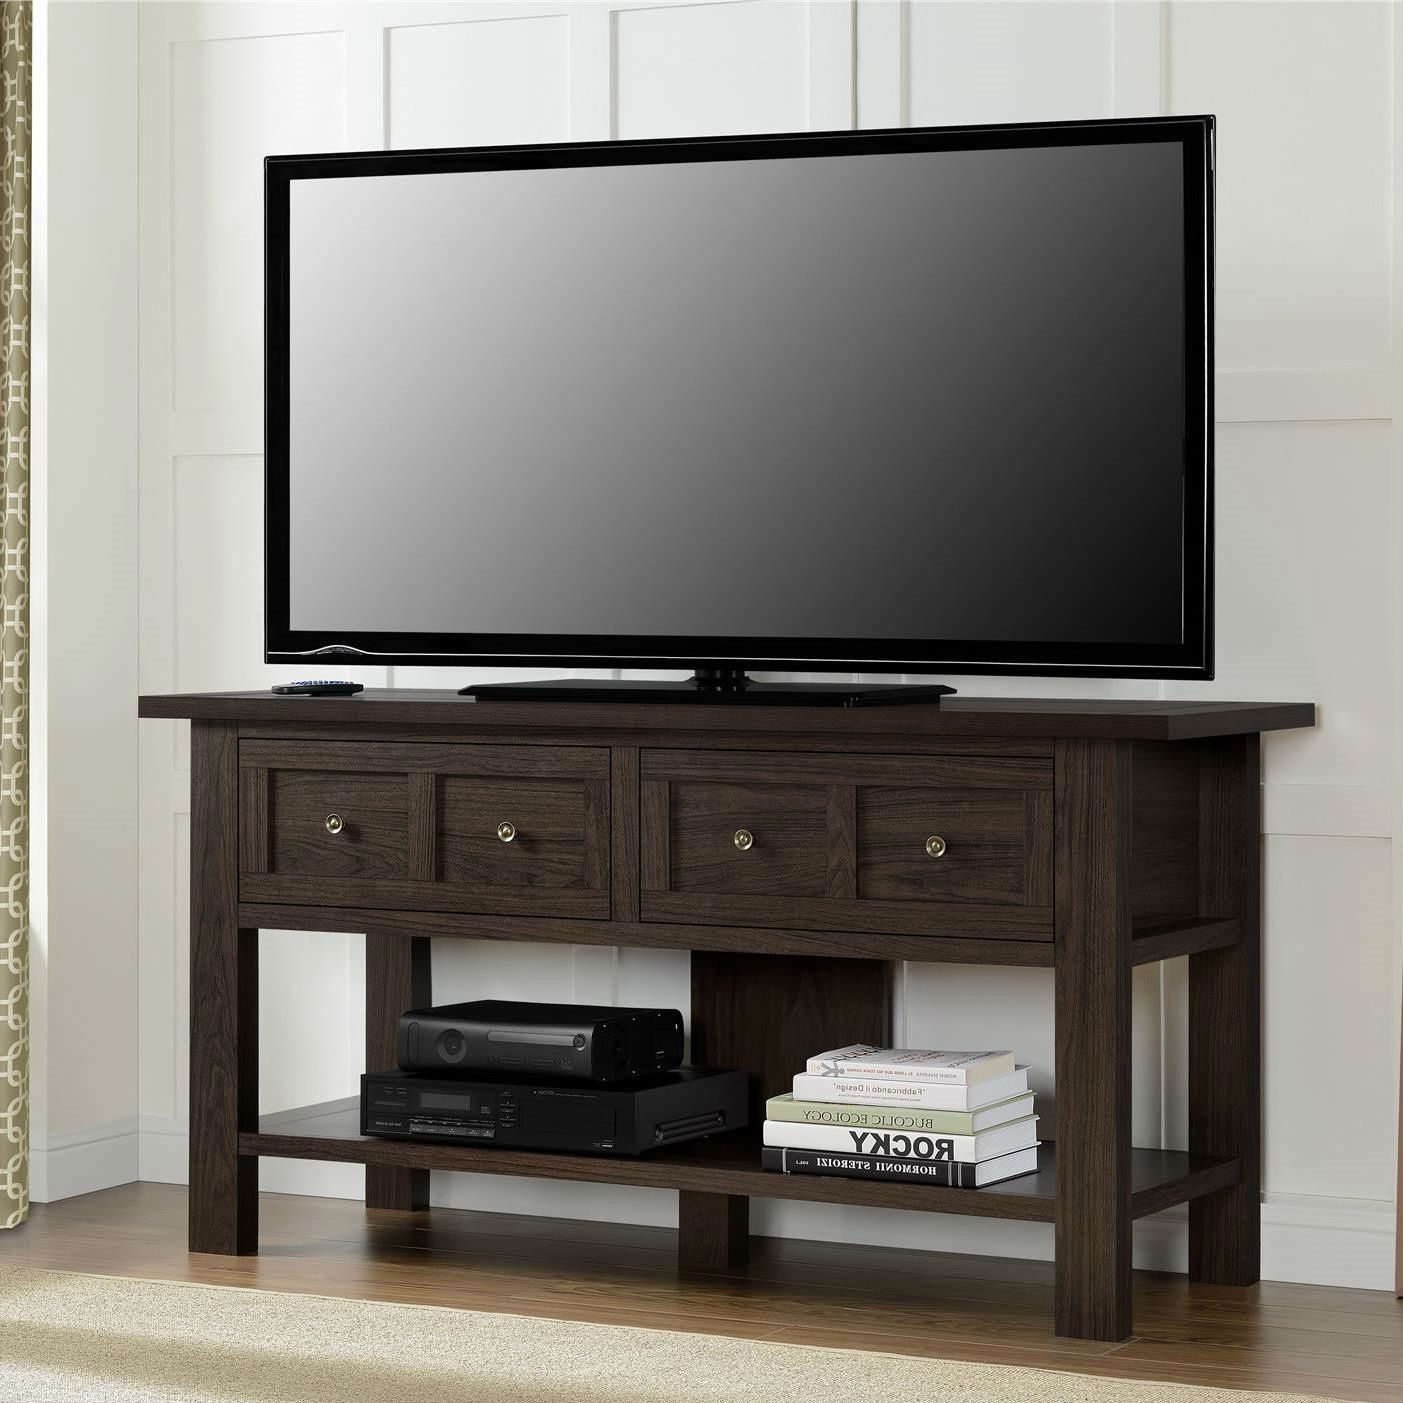 Superior Tv Table With Storage Part - 2: Classic 55-inch TV Stand Versatile Accent Console Table With 2 Storage  Drawers